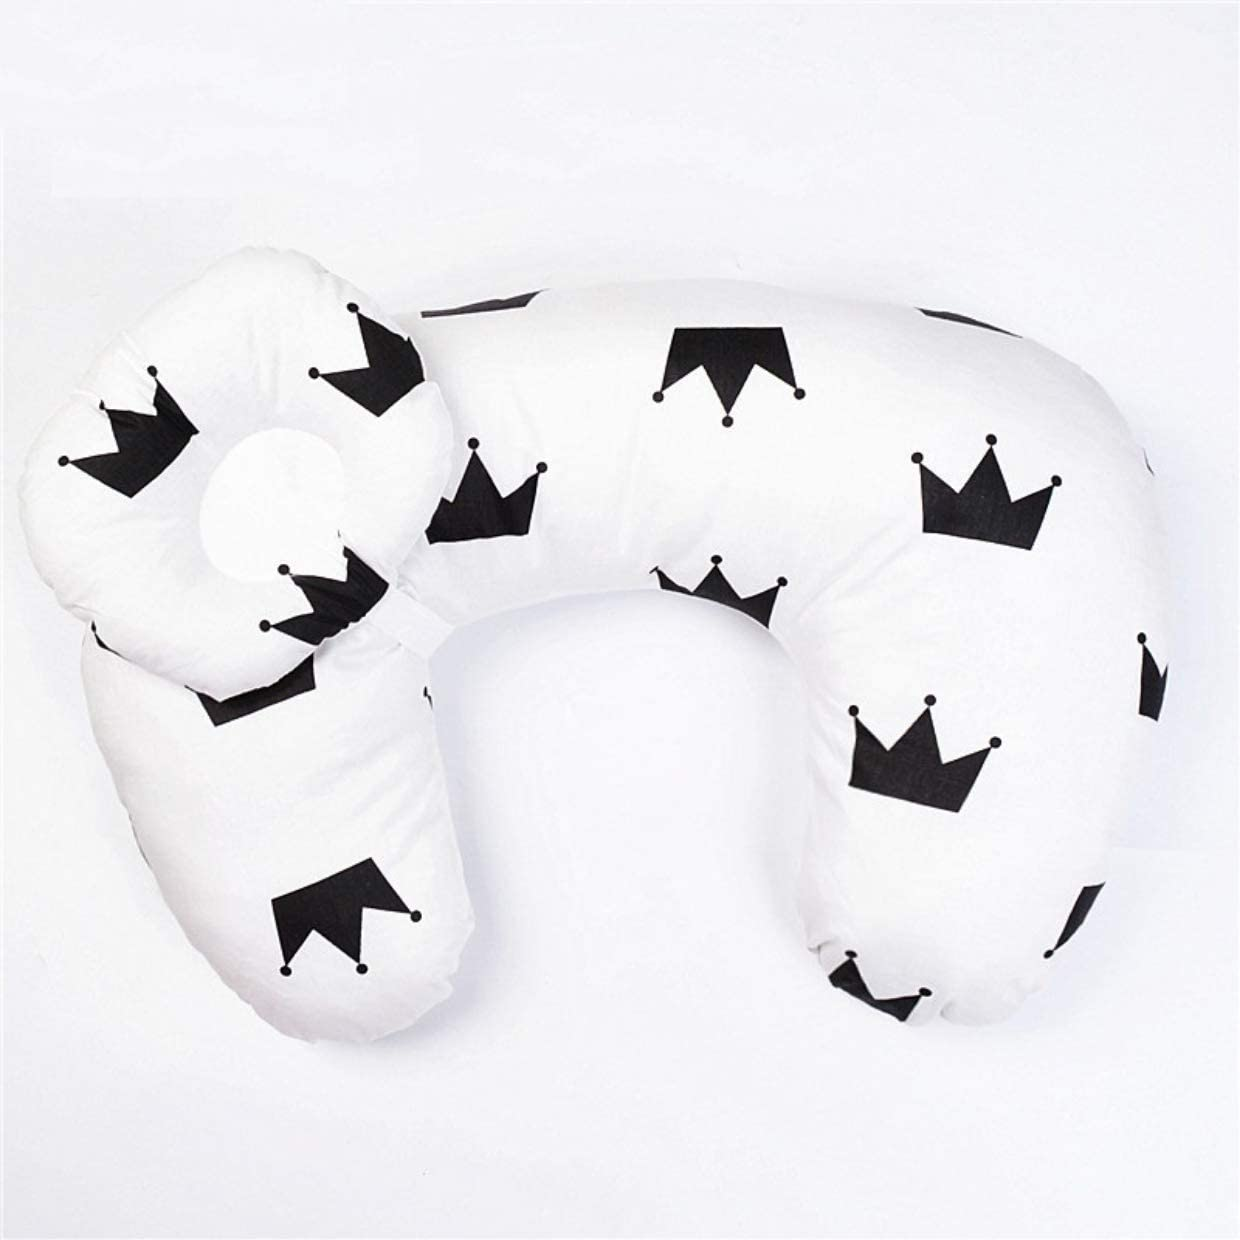 Pillow - 10 Newborn Baby Positioner Suitable for Breastfeeding Mothers of Newborn Babies JFBABY Baby Breastfeeding Pillow U-Shaped Nursing Pillow